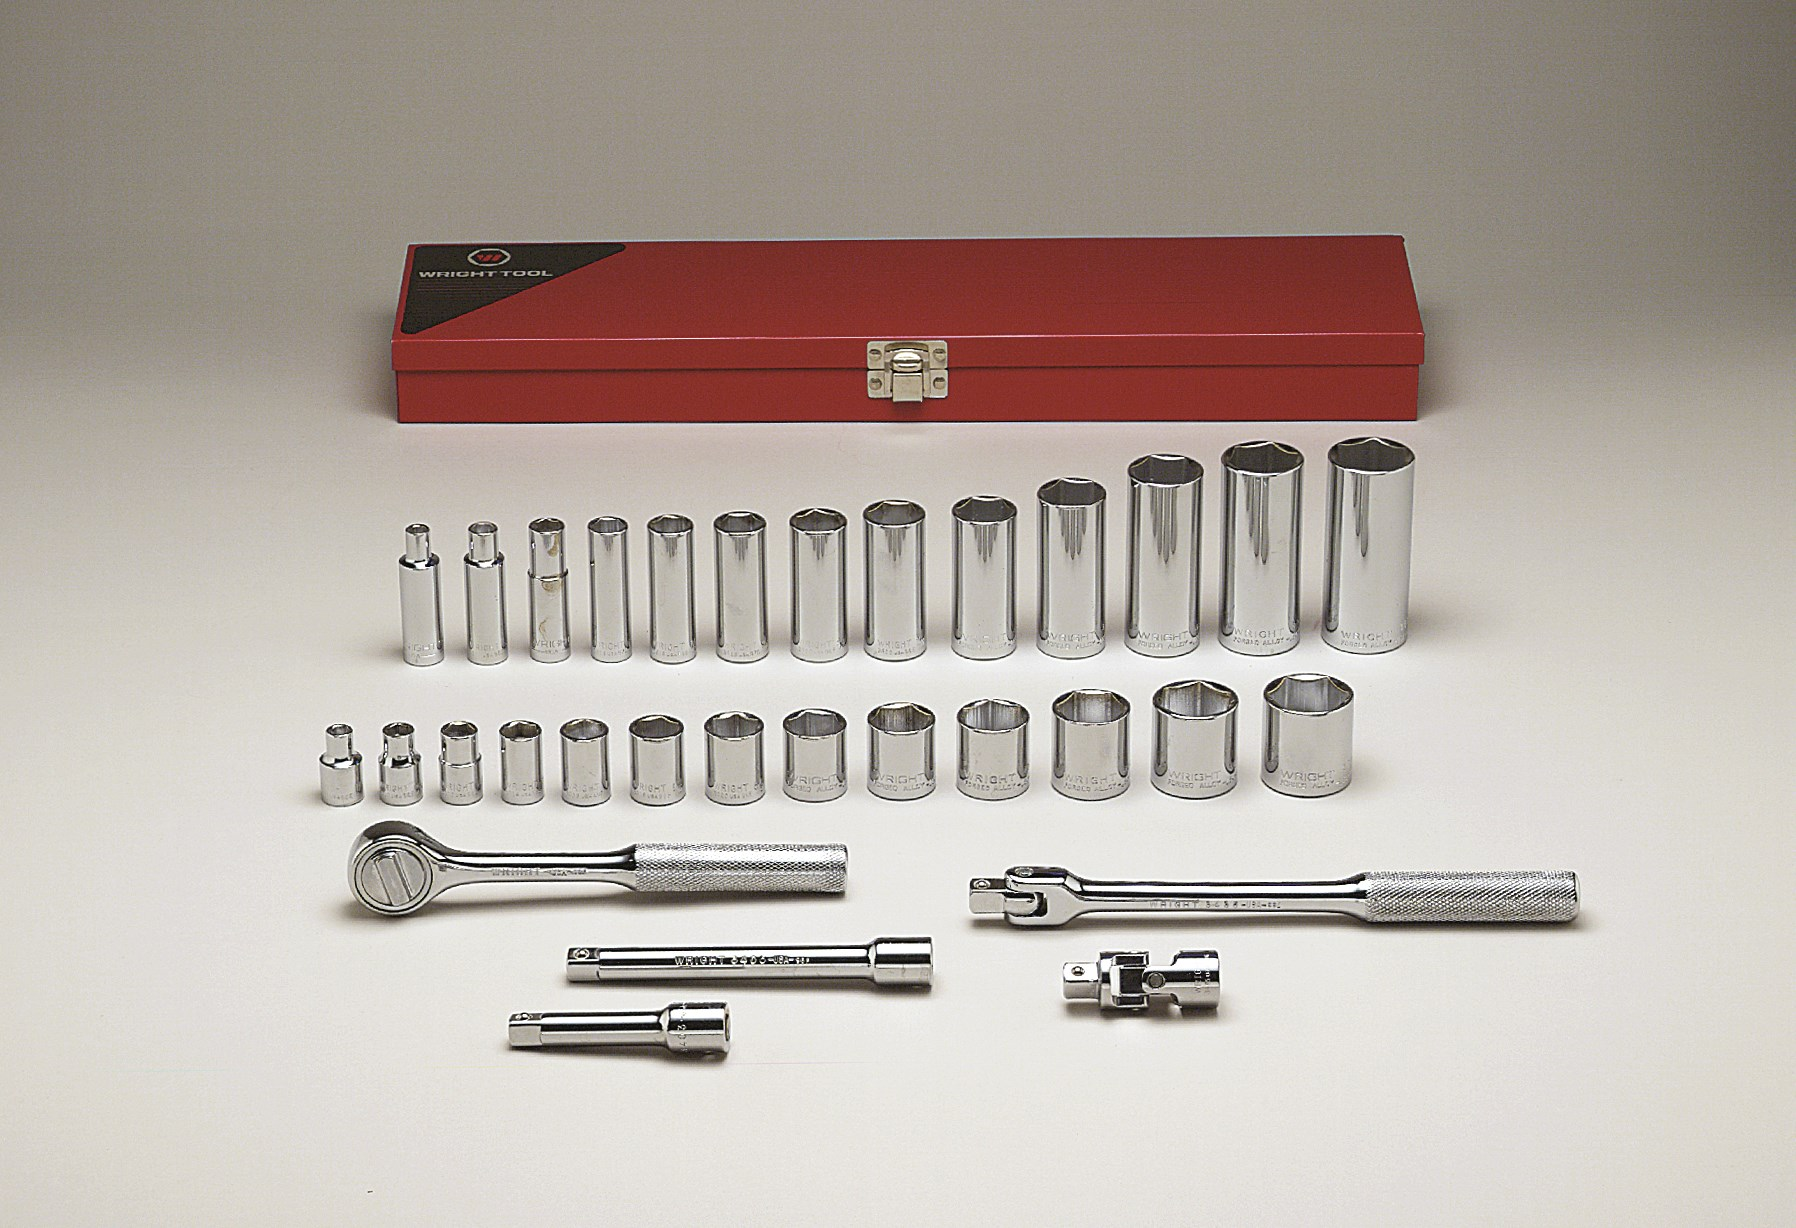 Wright Tool 339 3/8-inch Drive 31 Pieces Standard and Deep Socket Set 6-Point